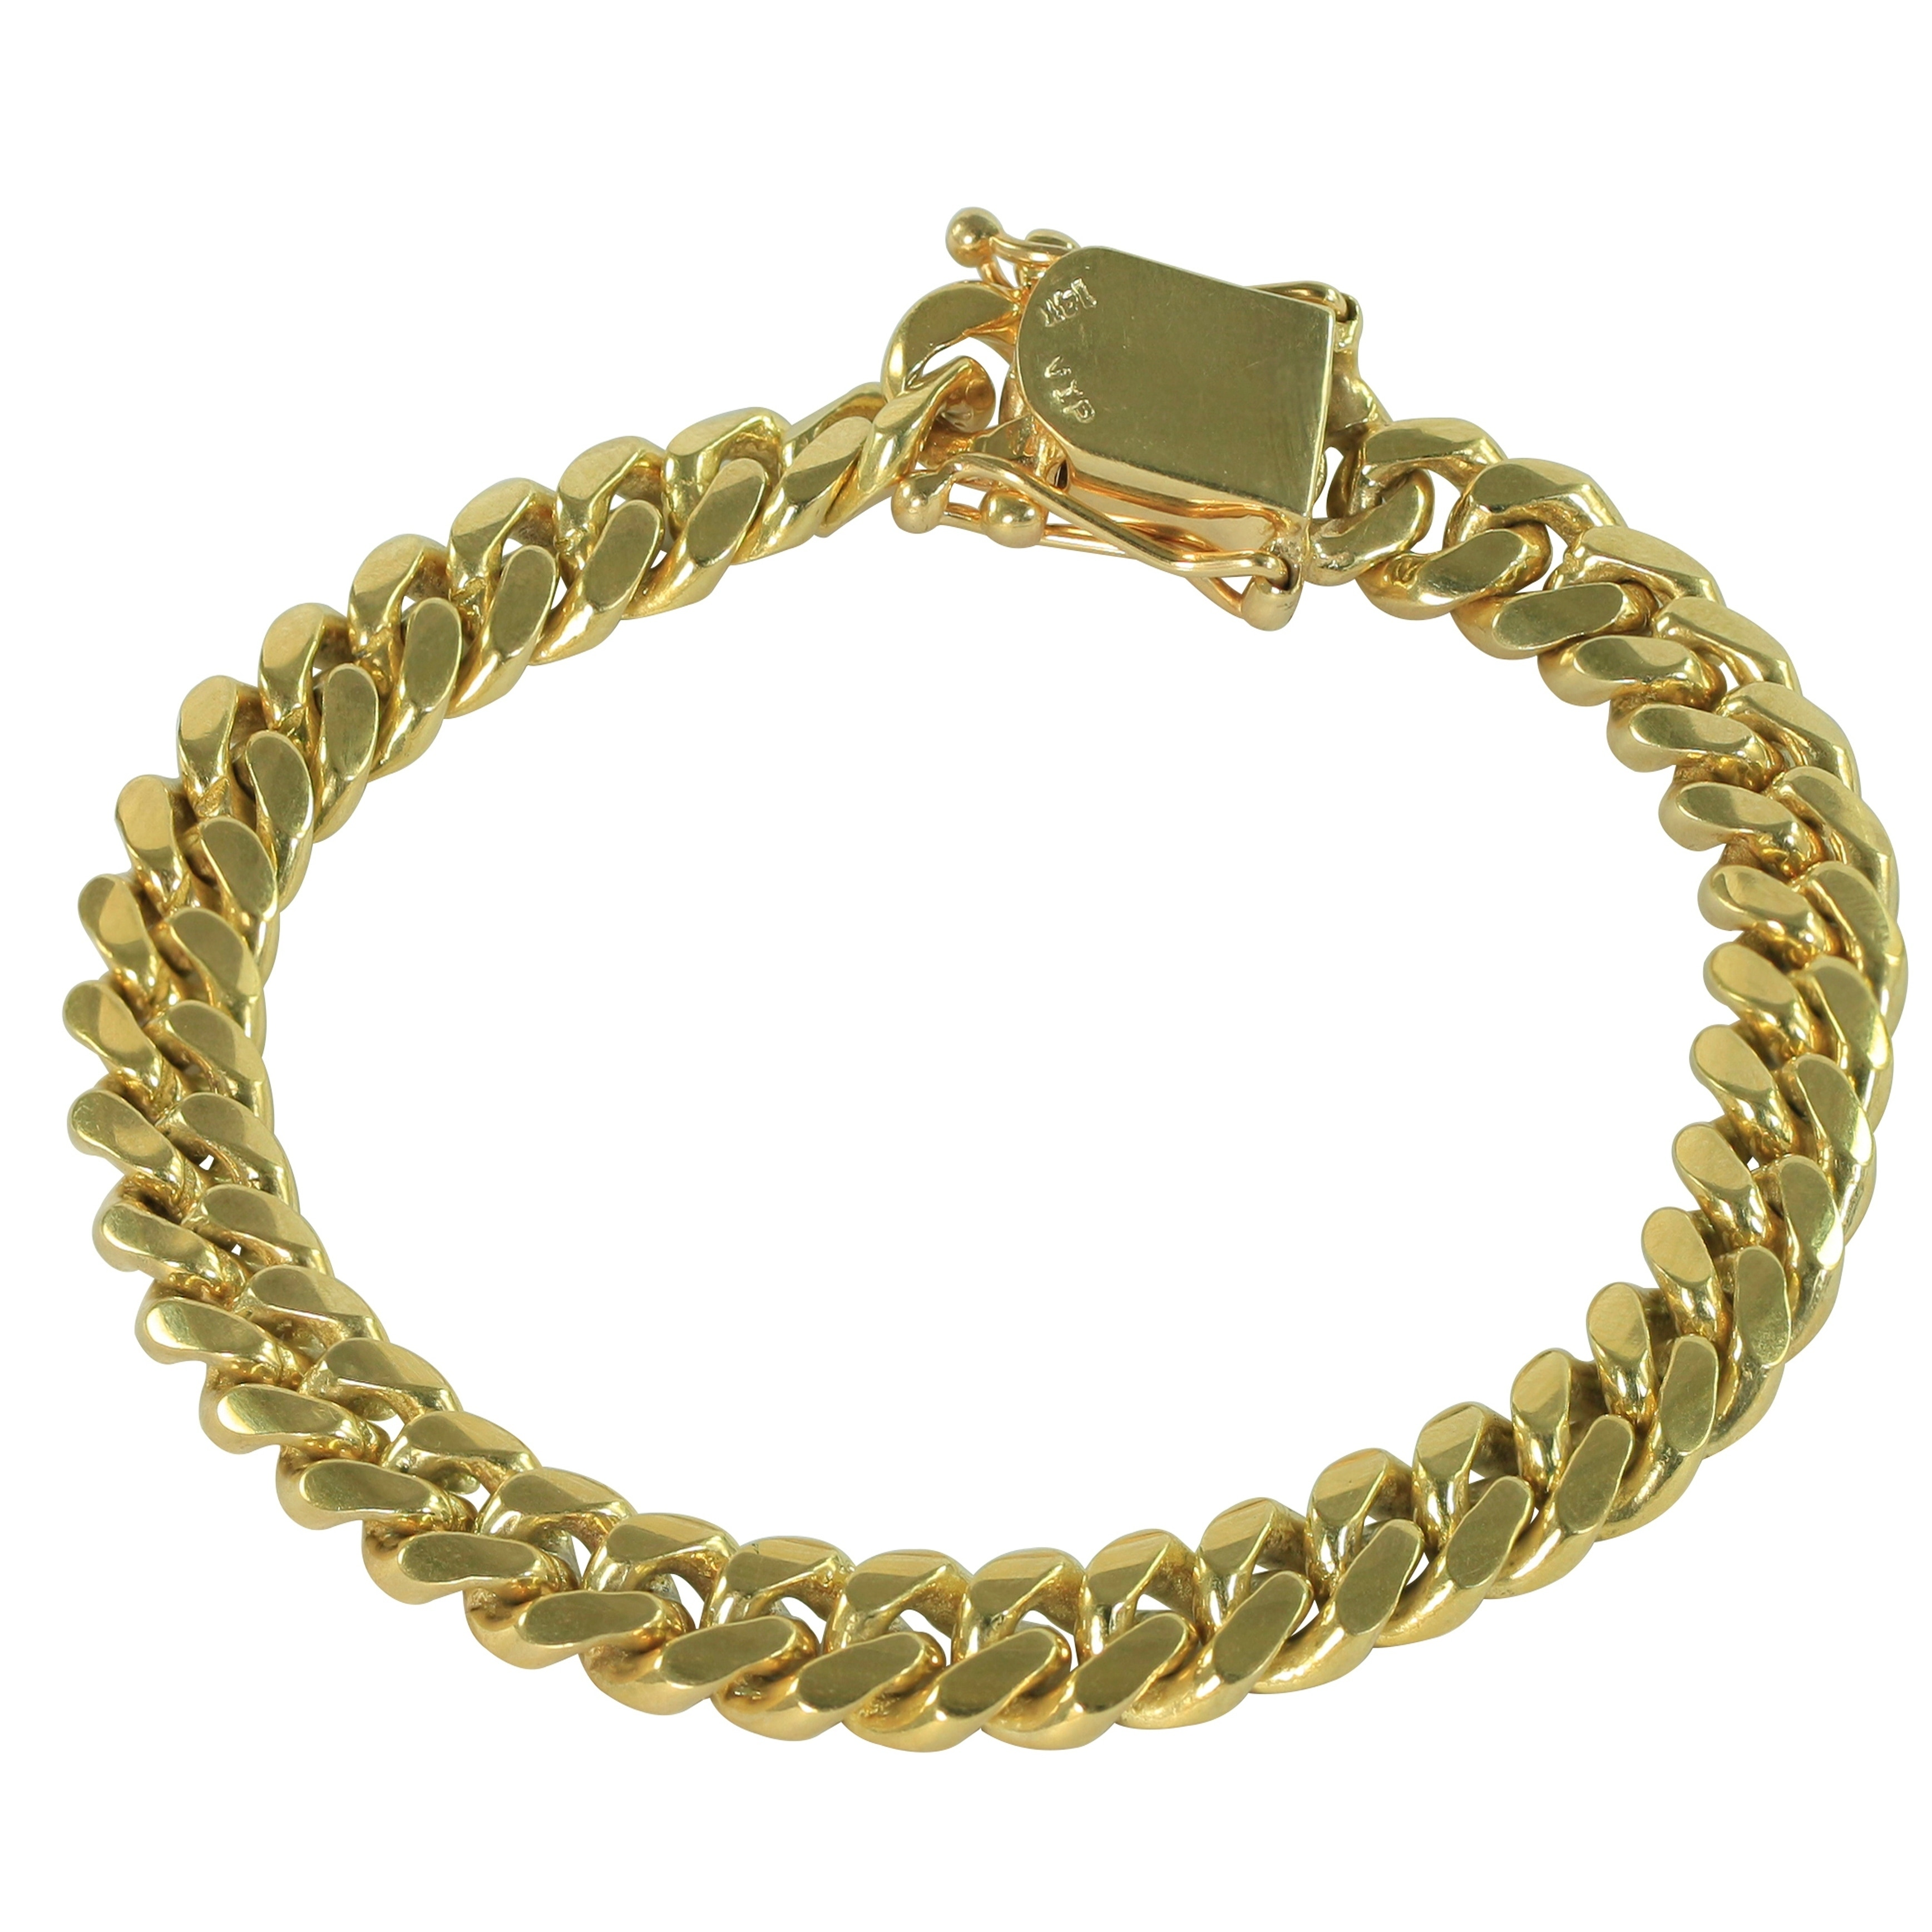 736a905529b15 SOLID 14k Yellow Gold 8.5 Inch Miami Cuban Link Bracelet 9 MM , 51.2 Grams